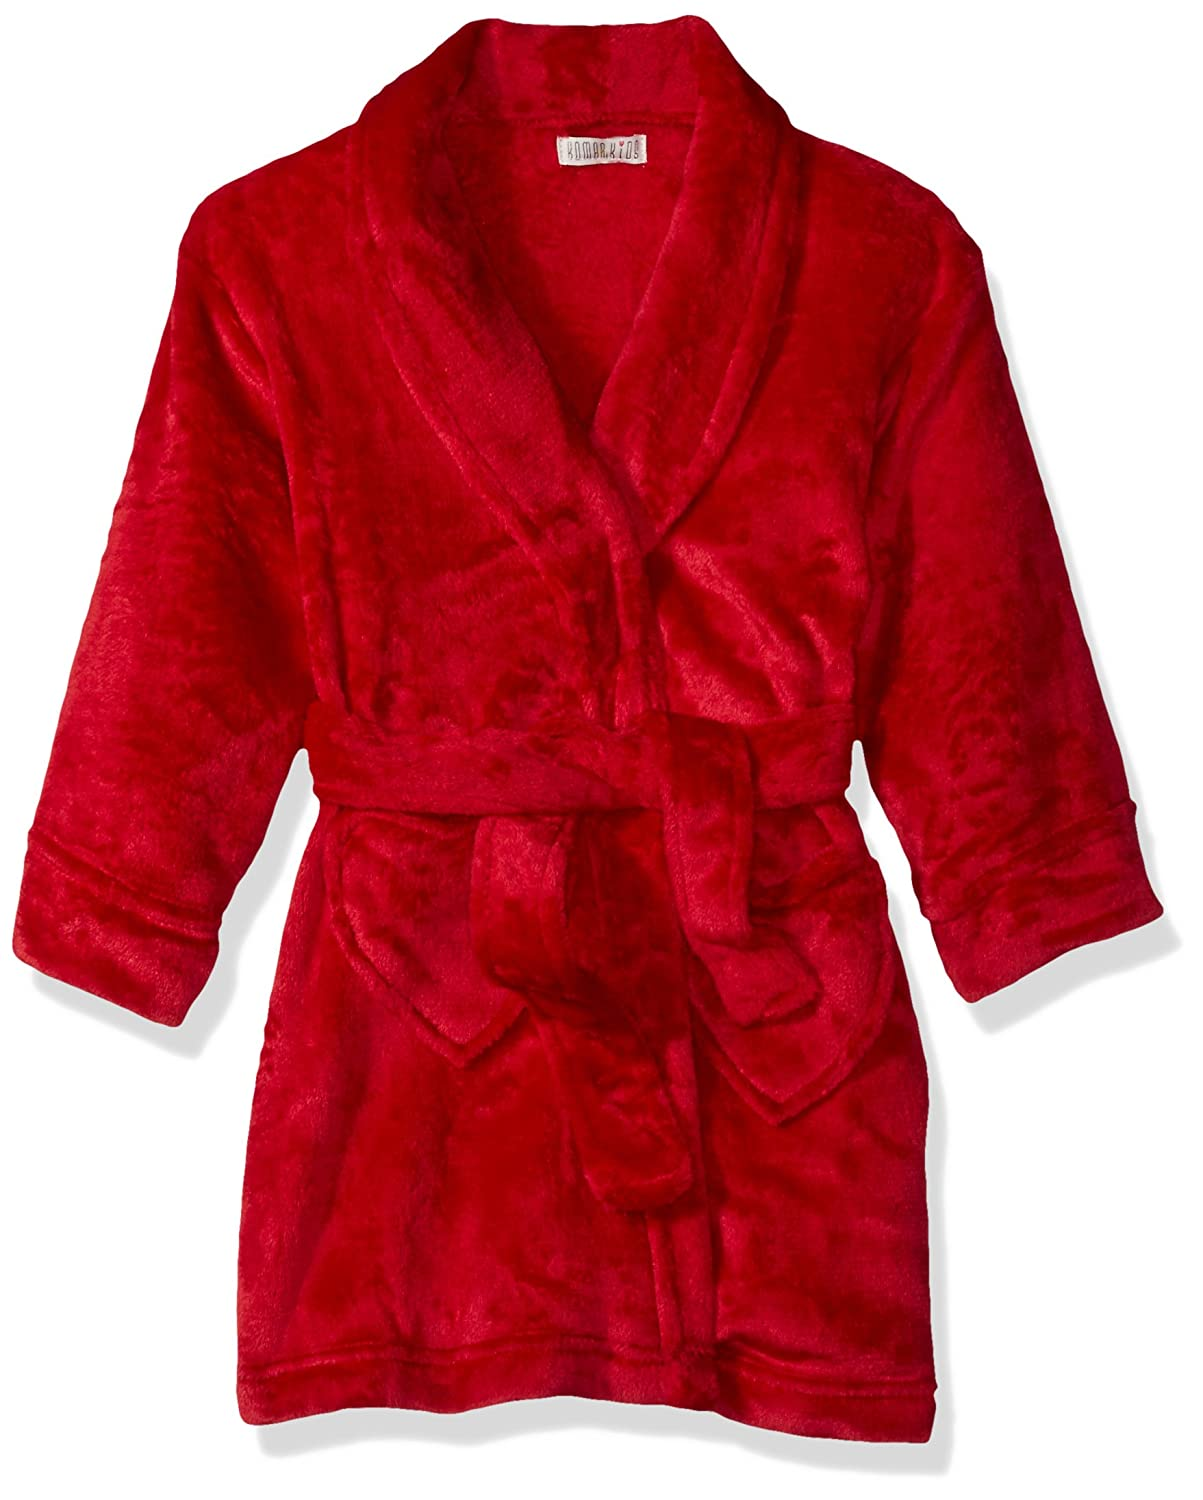 Komar Kids Girls' Big Velvet Fleece Plush Robe, Pink